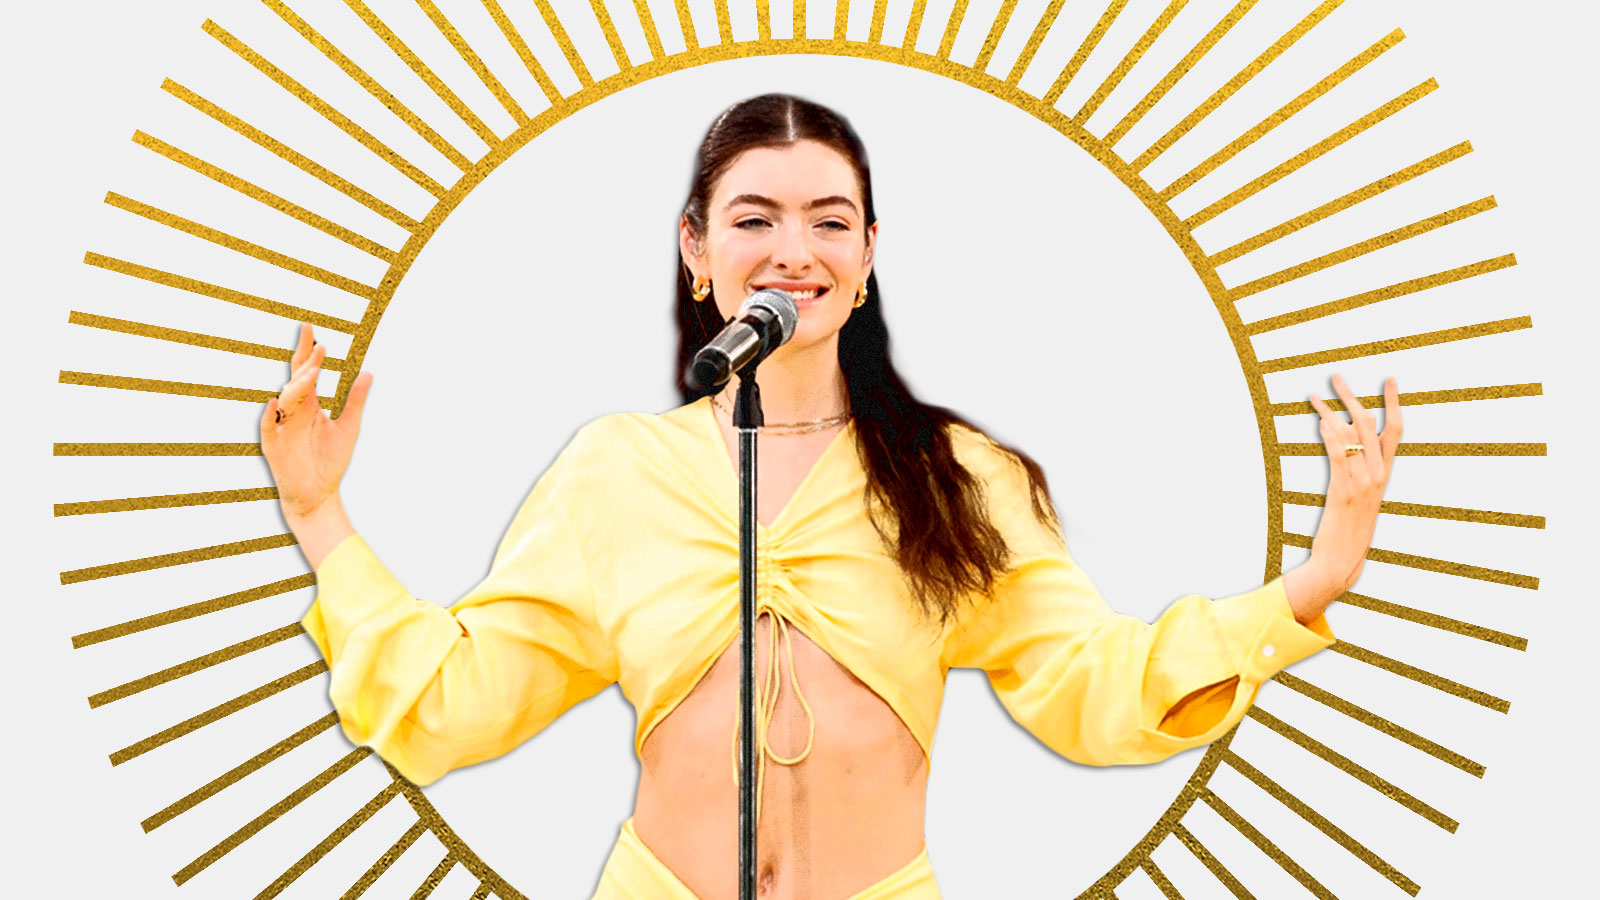 The singer Lorde in front of a sun graphic